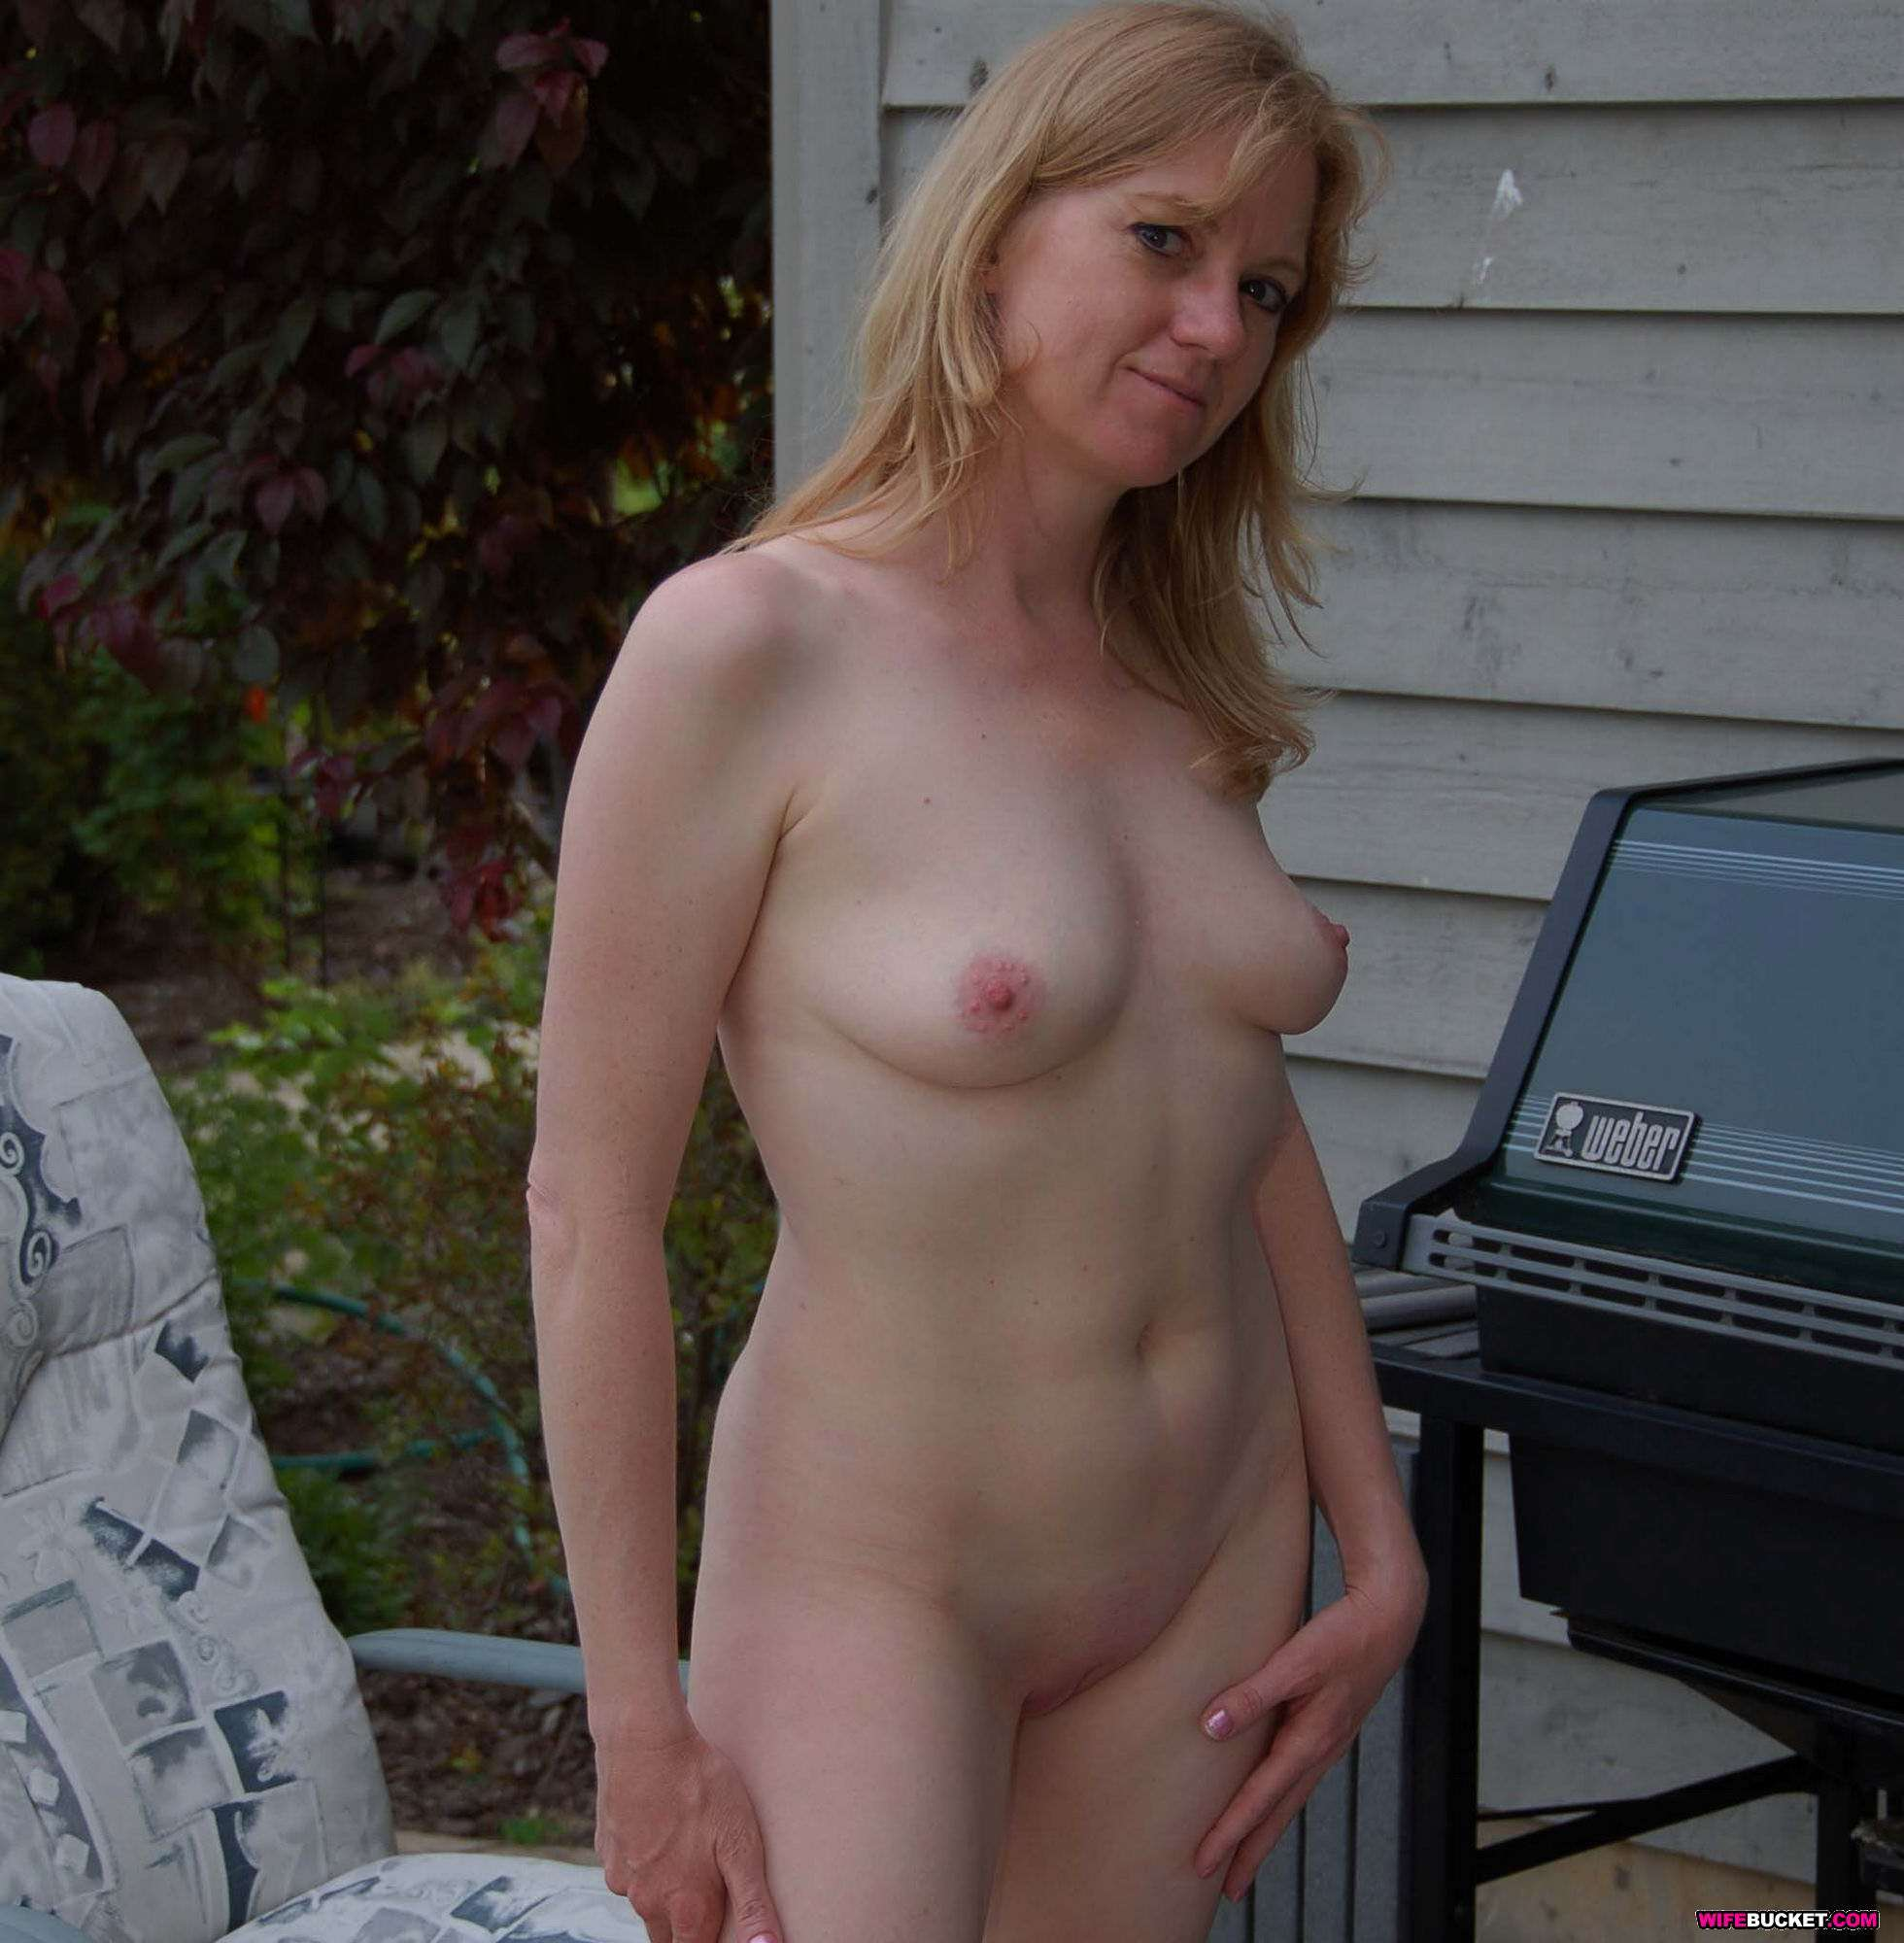 Amateur free nude photo submitted